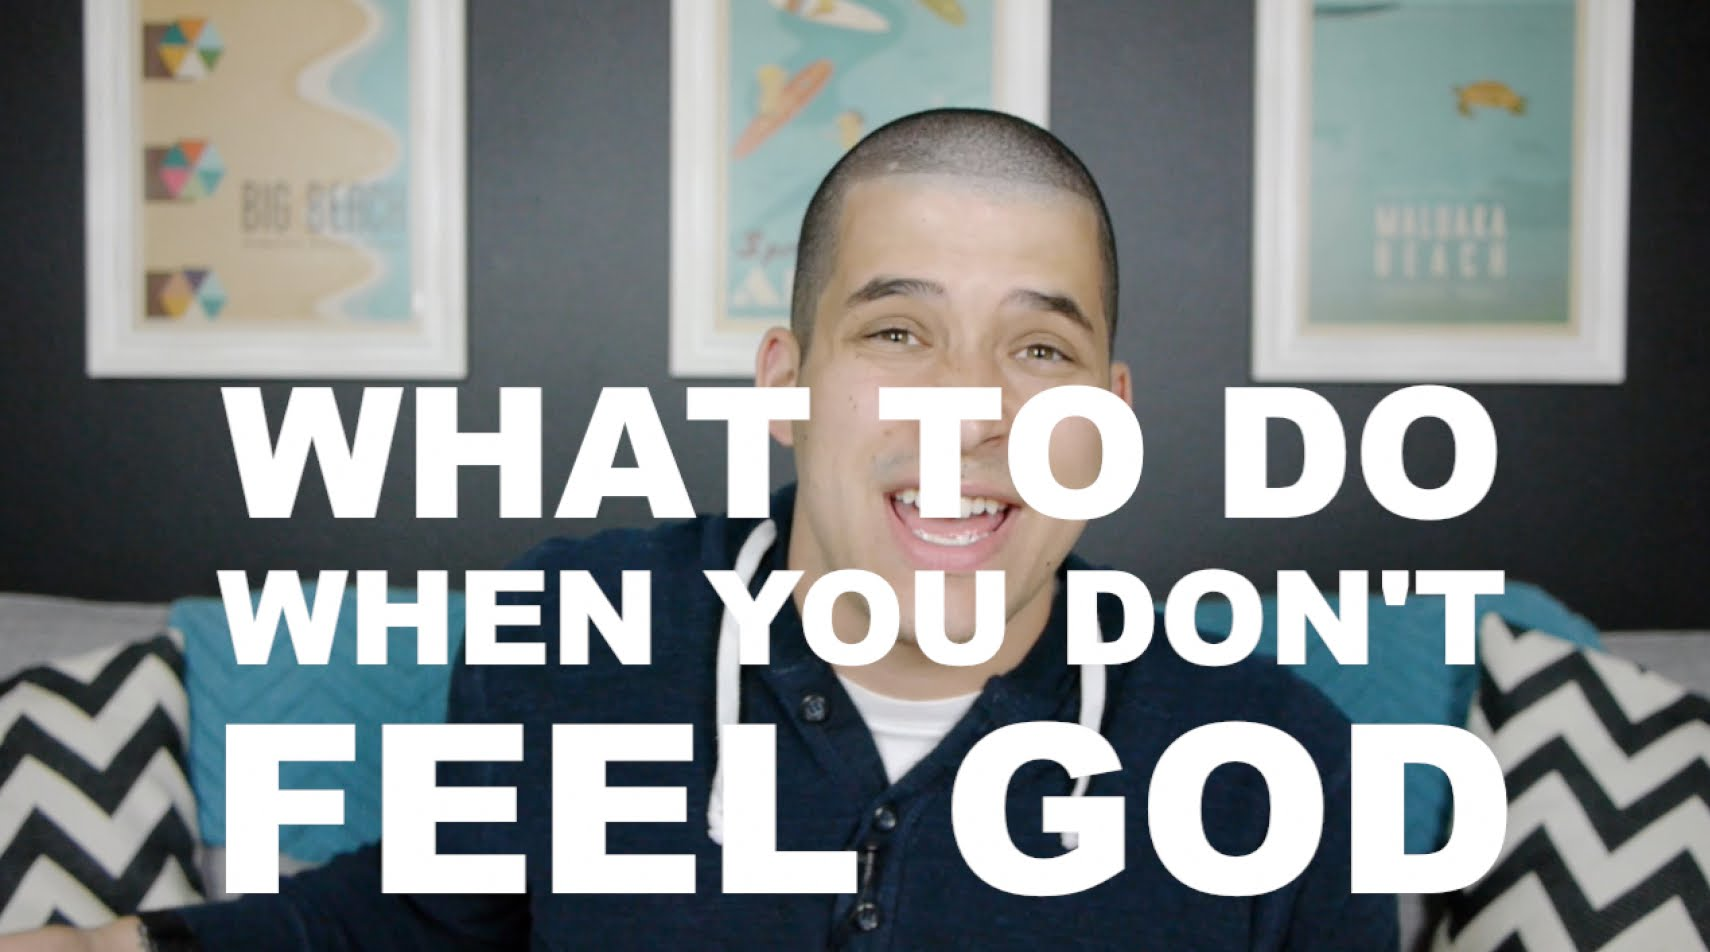 What To Do When You Don't Feel God